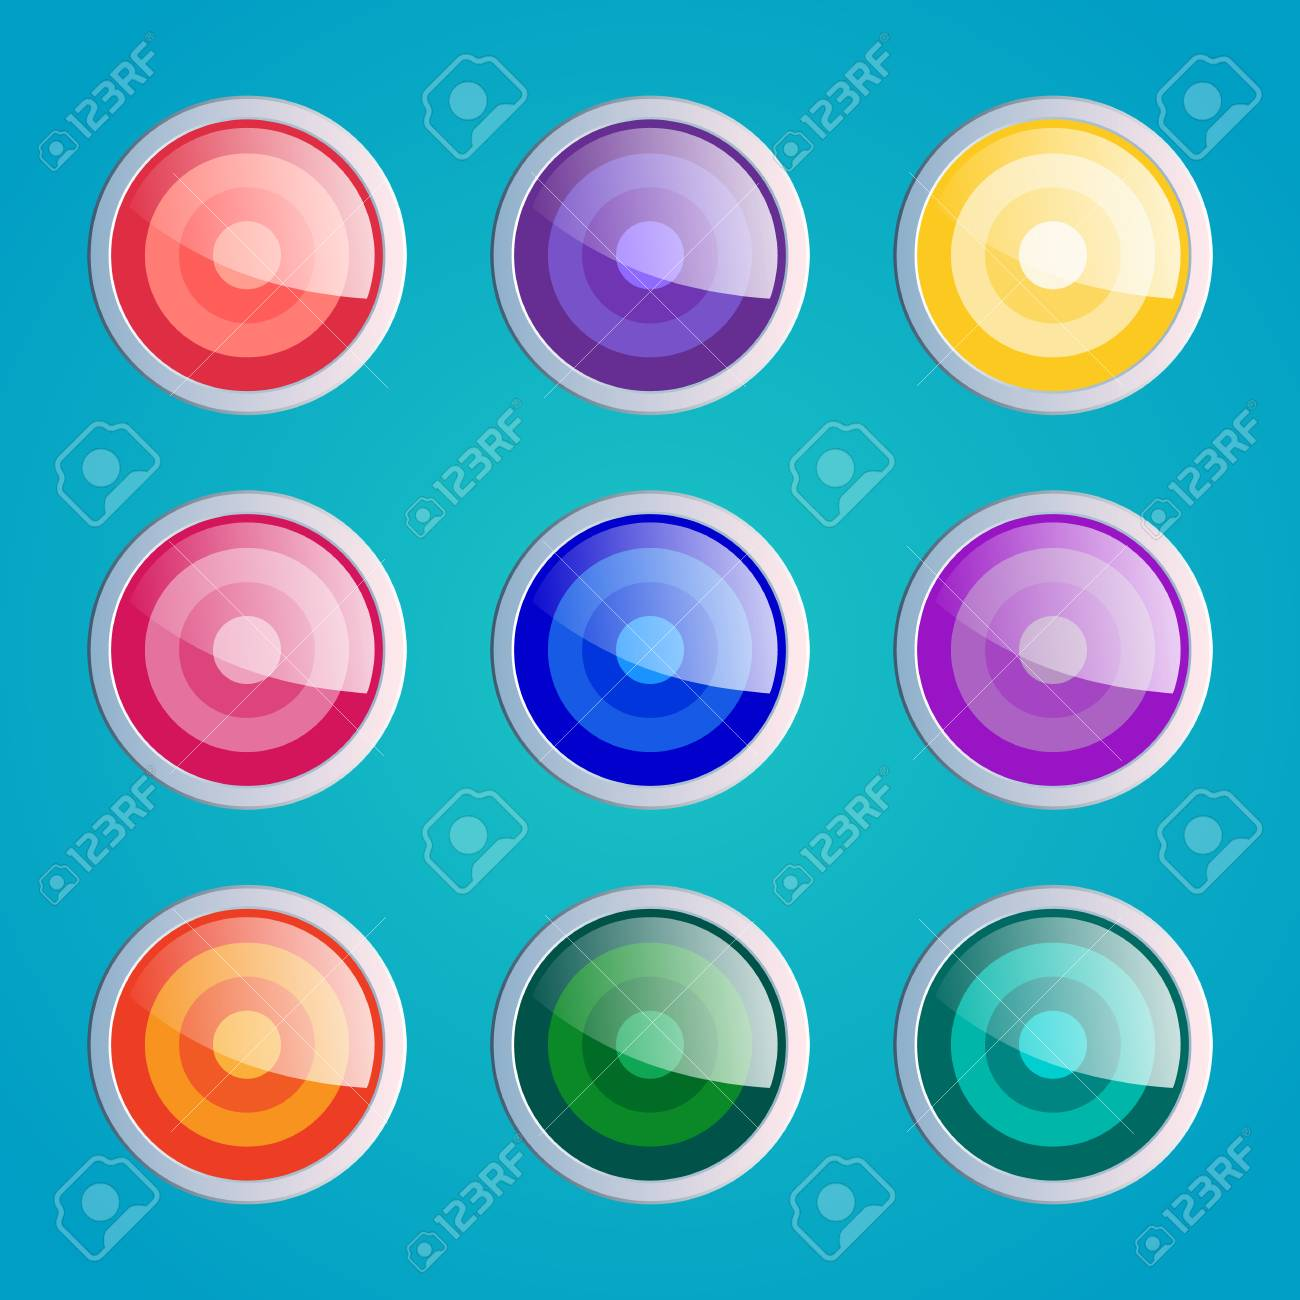 Circle Buttons Set, App Icons With Different Color Textures ...